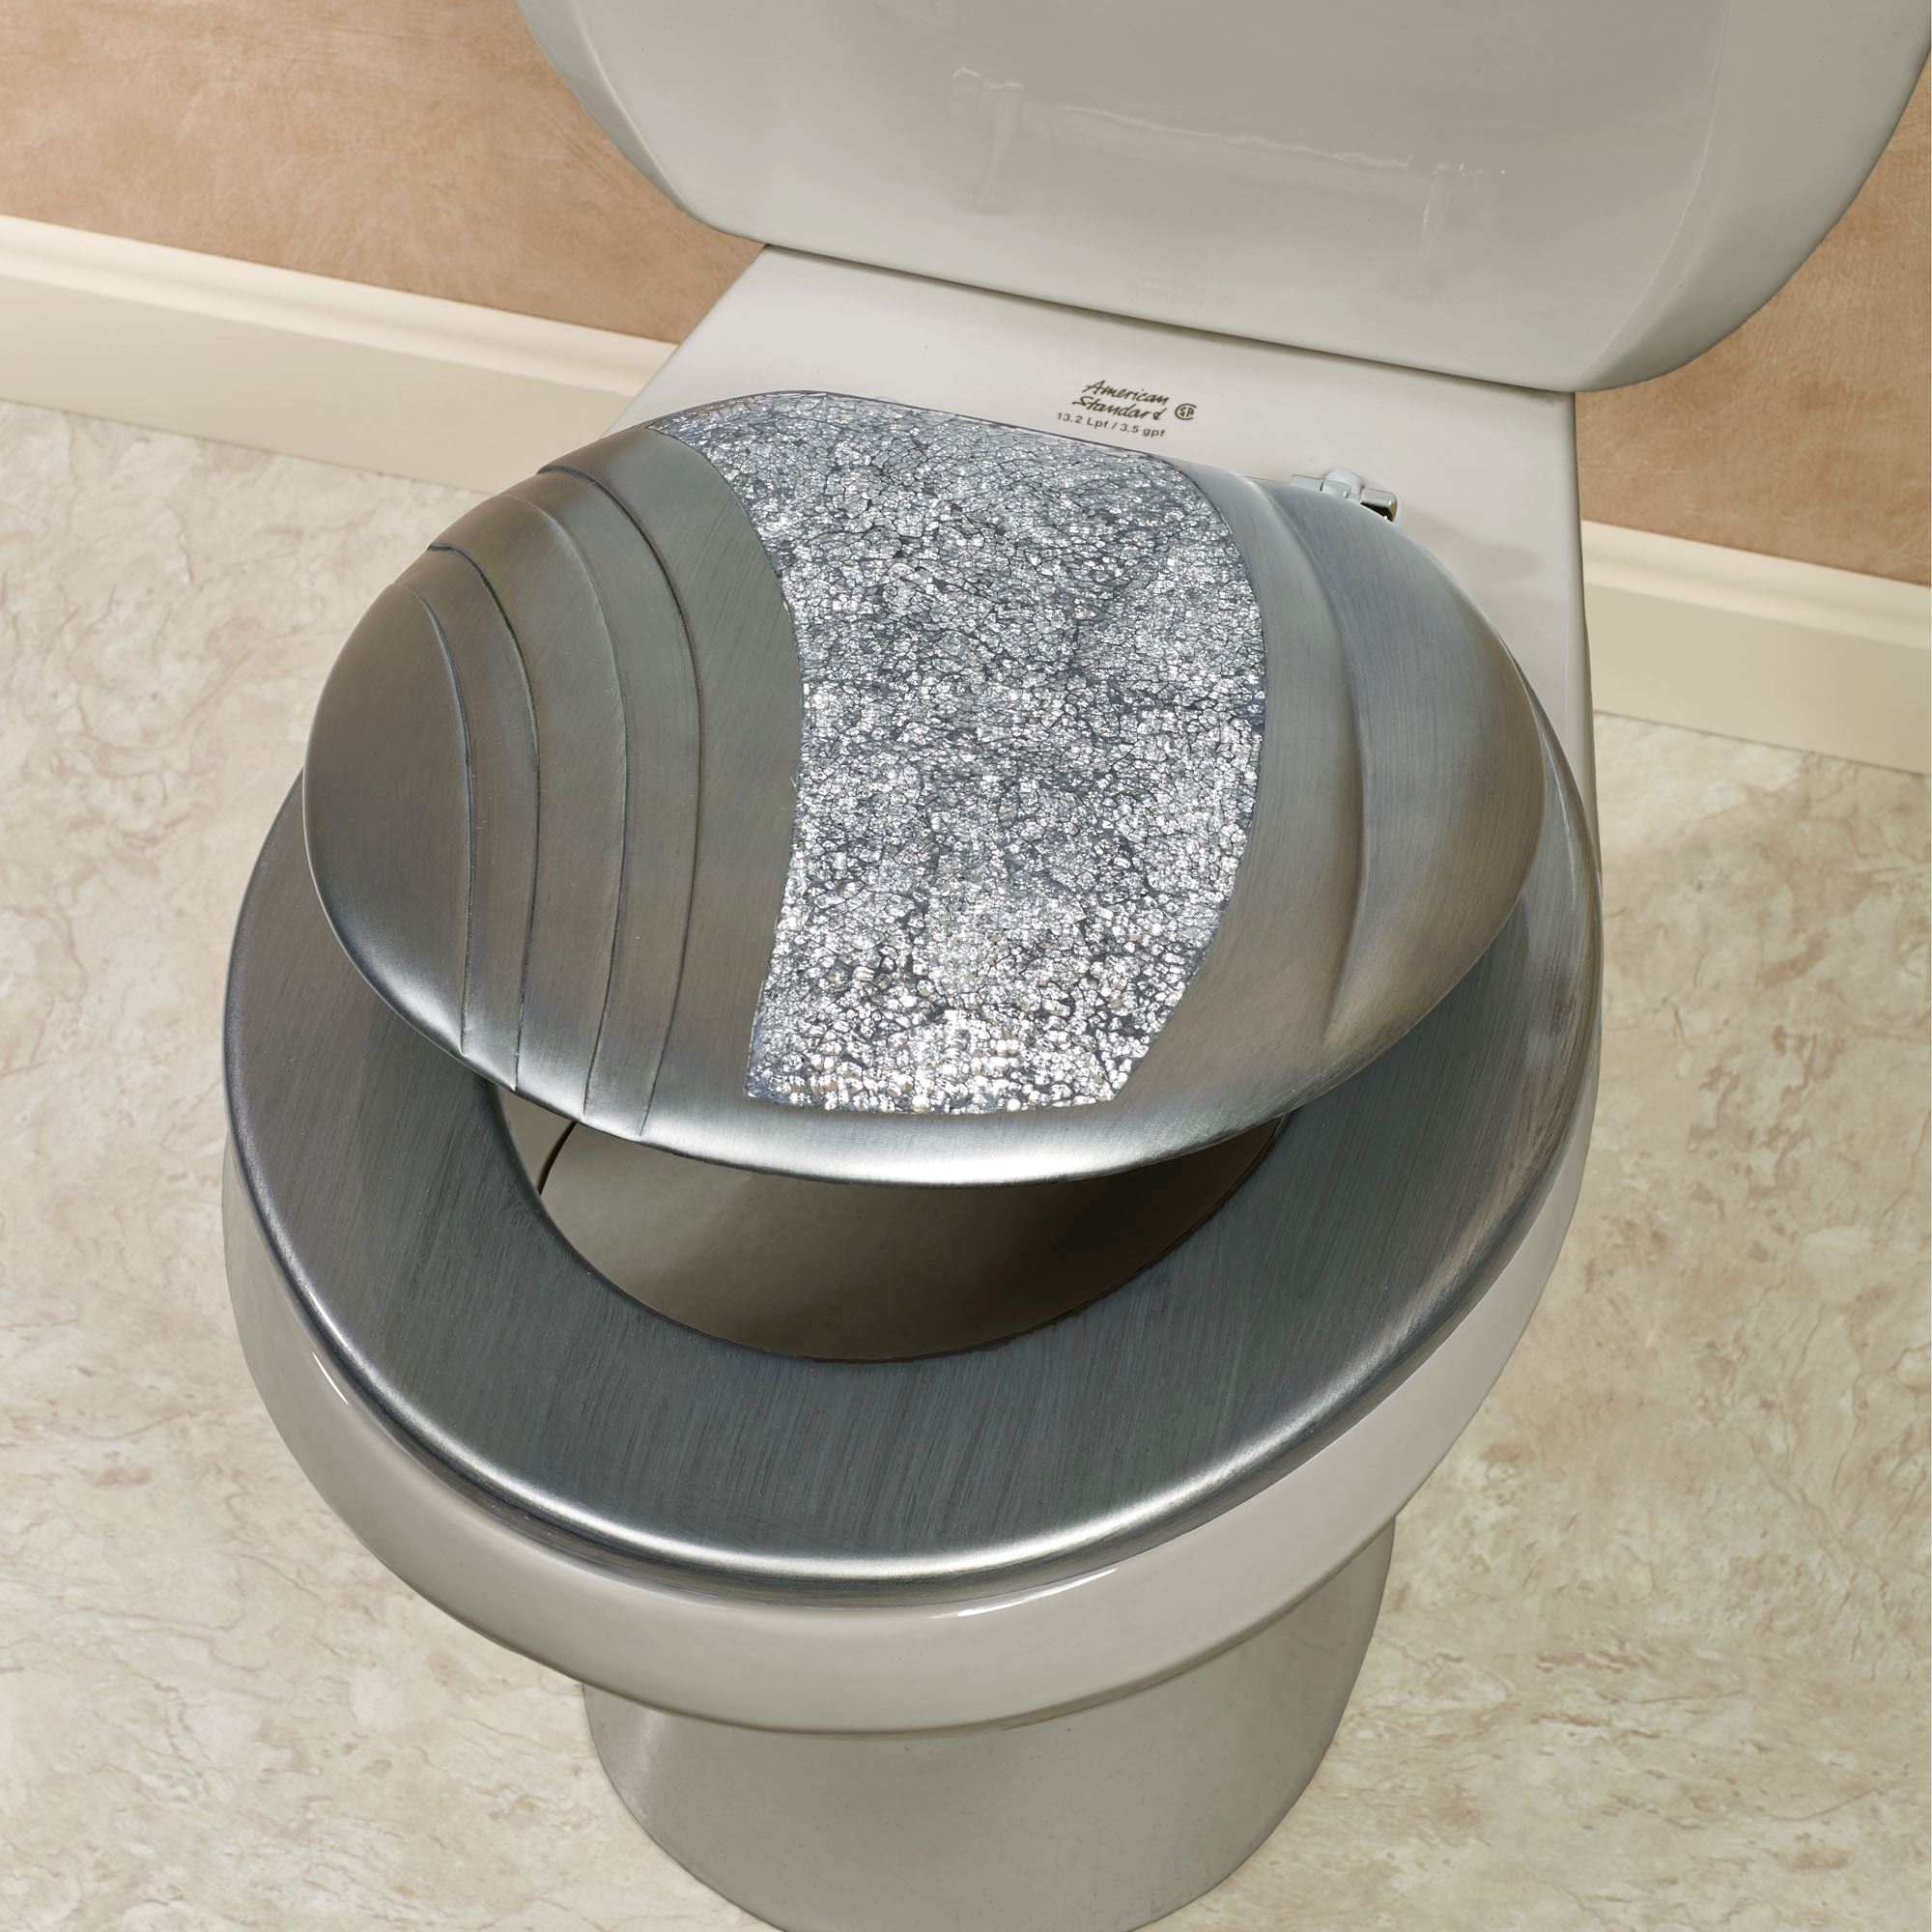 Strange Brilliance Mosaic Silver Gray Standard Toilet Seat Caraccident5 Cool Chair Designs And Ideas Caraccident5Info